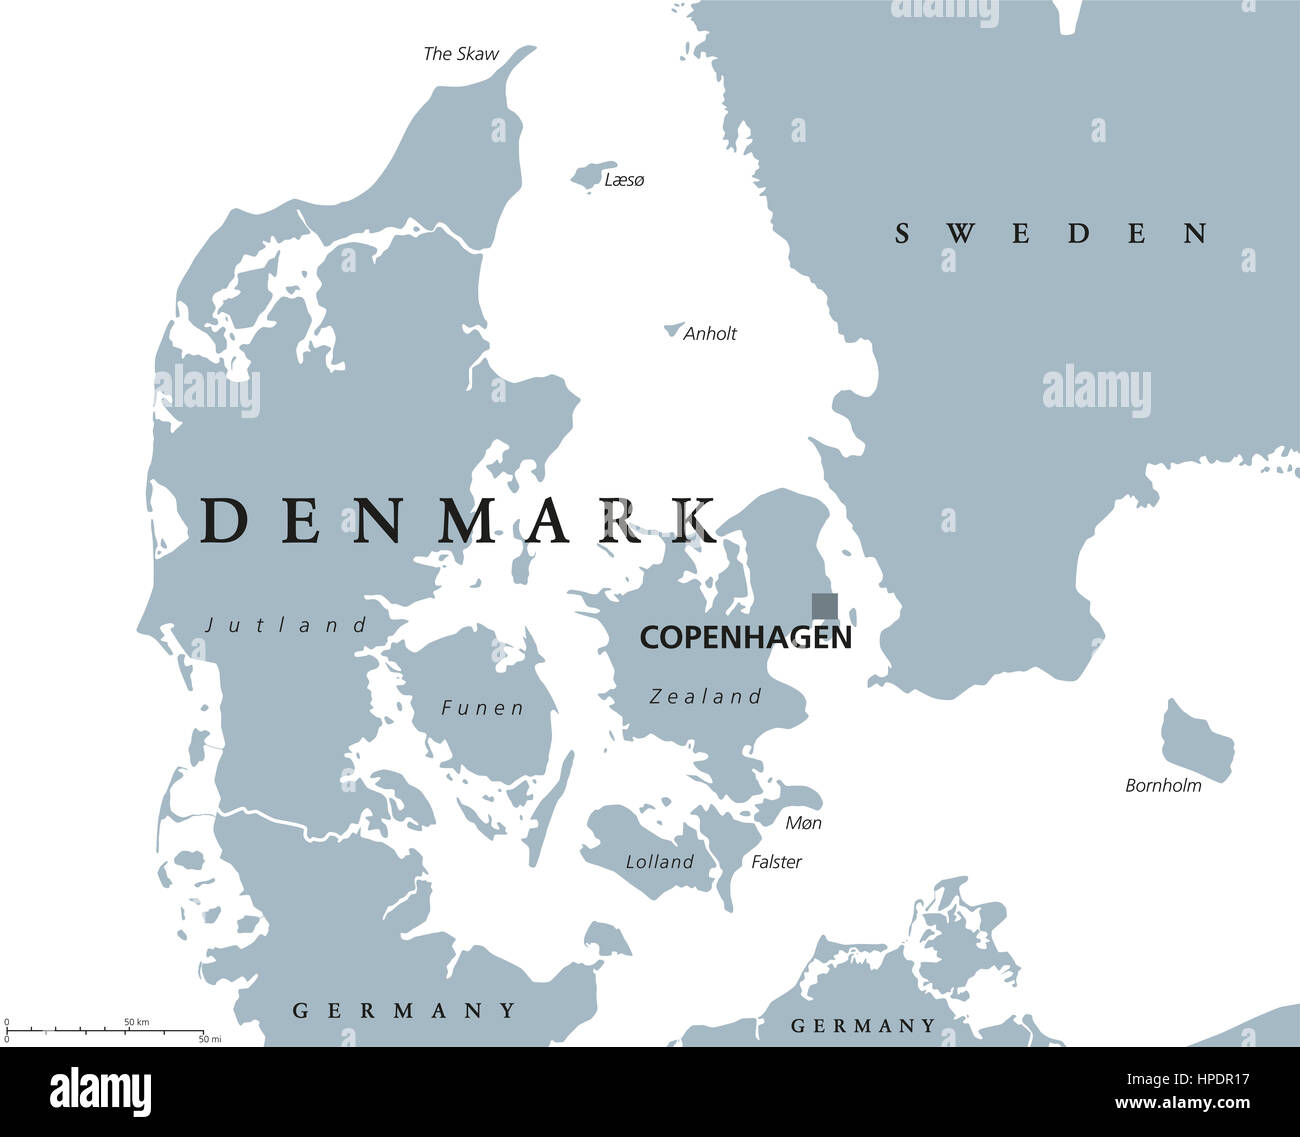 Denmark political map with capital Copenhagen and neighbor countries ...